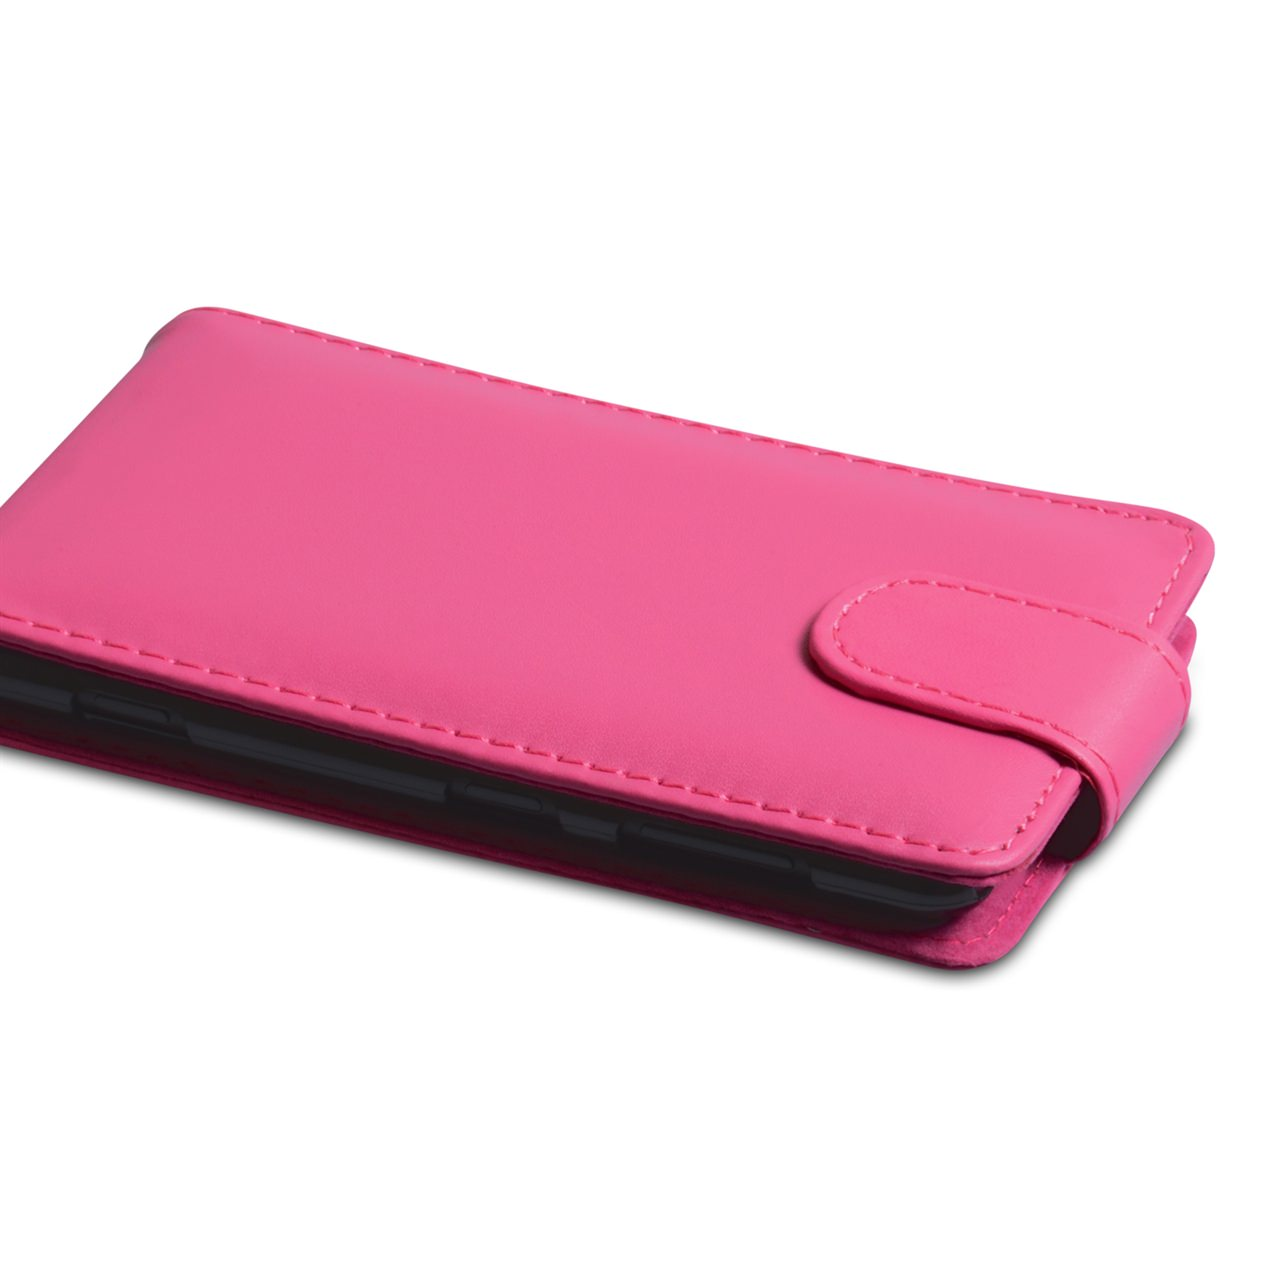 YouSave Nokia Lumia 625 Leather Effect Flip Case - Hot Pink